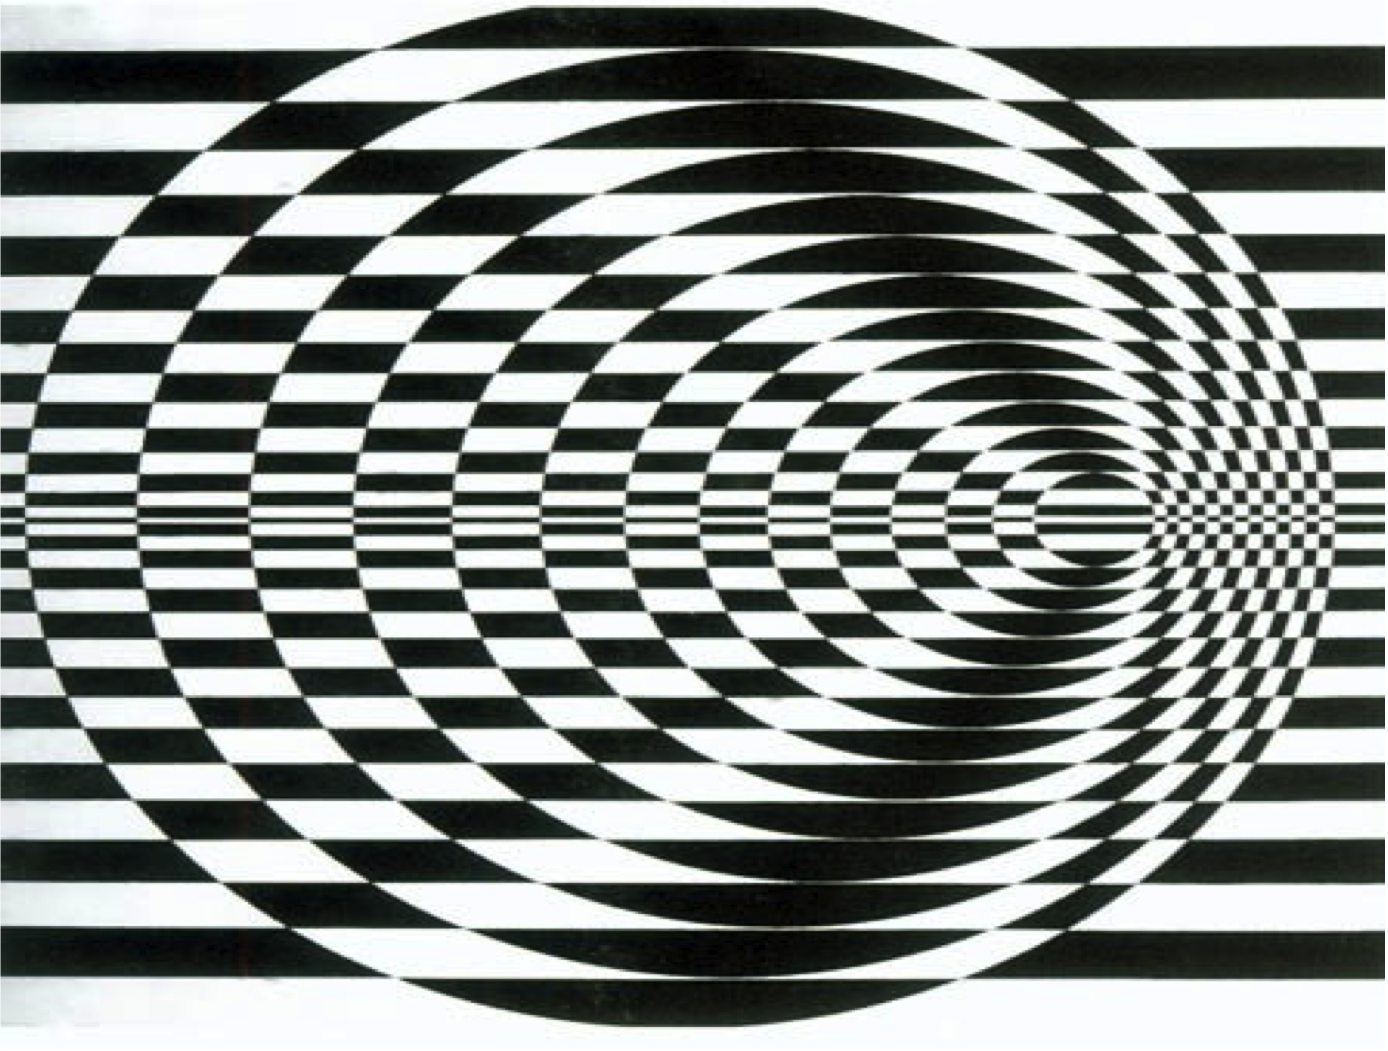 """illusion essay For example, research using his """"nested squares illusion"""", similar to the image below, suggests that the brain identifies shapes using corners rather than lines 21st century fast forward to the early 2000s and there was a resurgence in illusion research, including looking at the strange way our brains process time."""